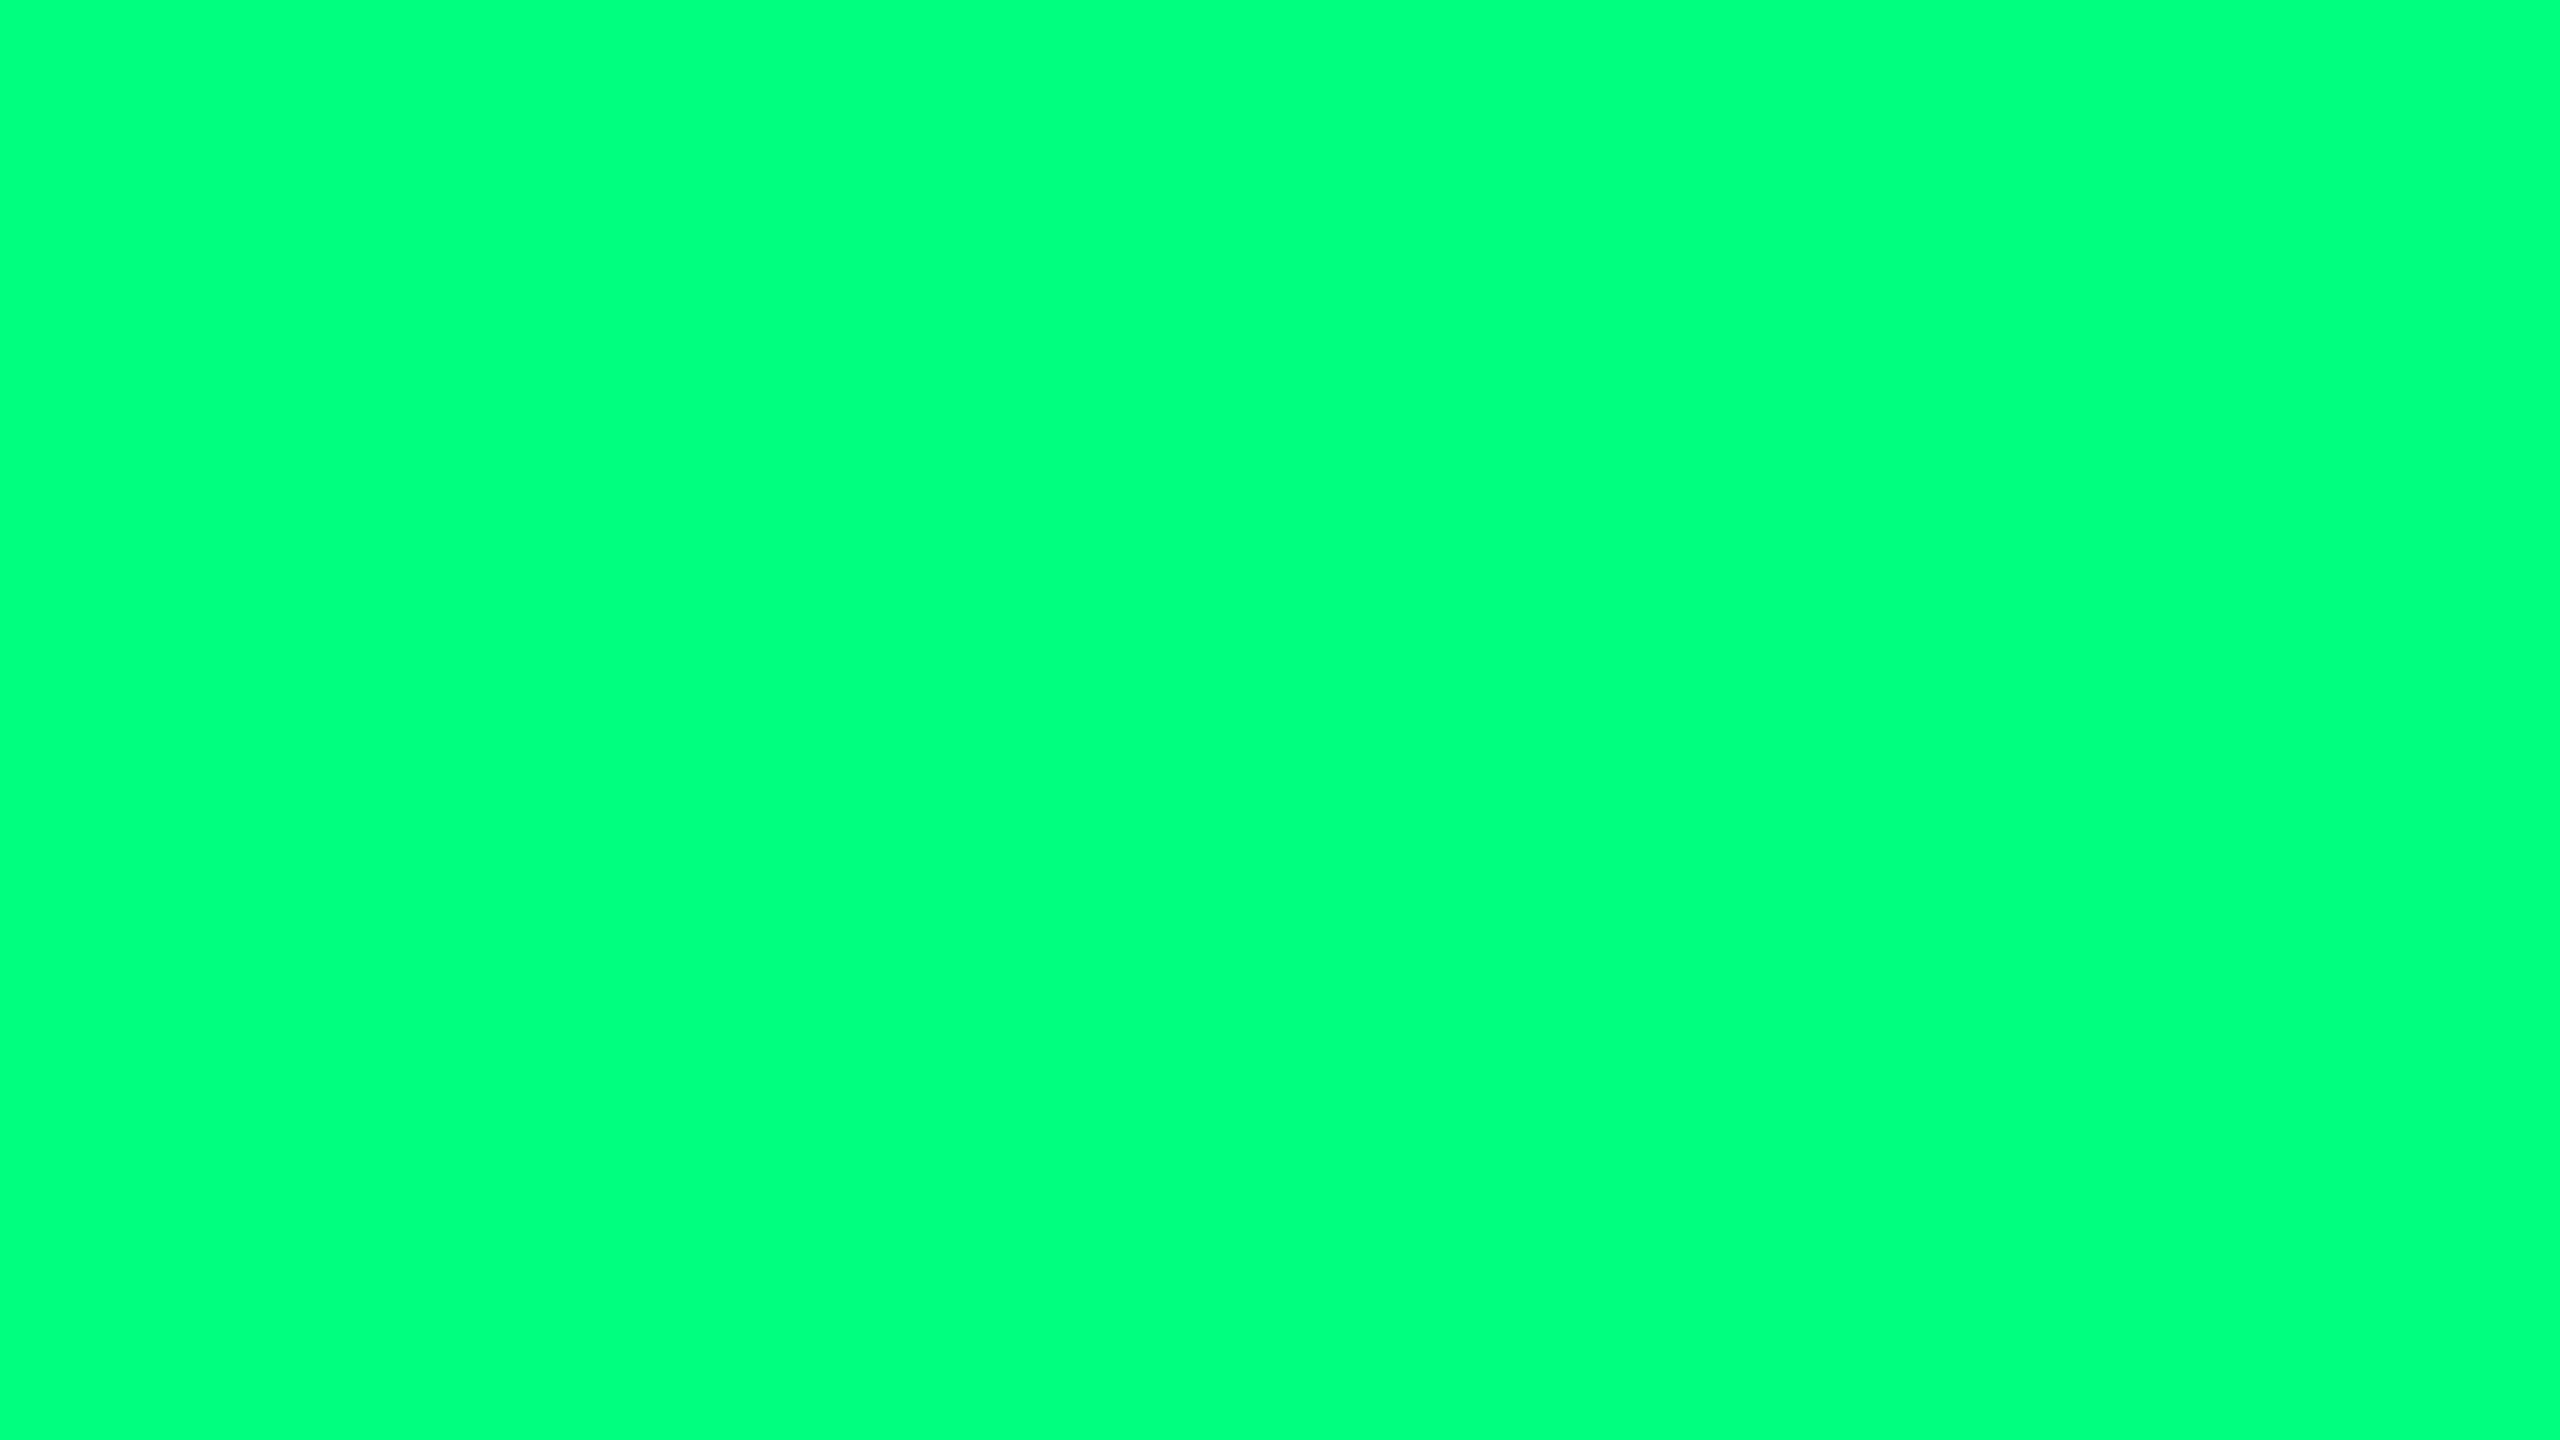 2560x1440 Guppie Green Solid Color Background